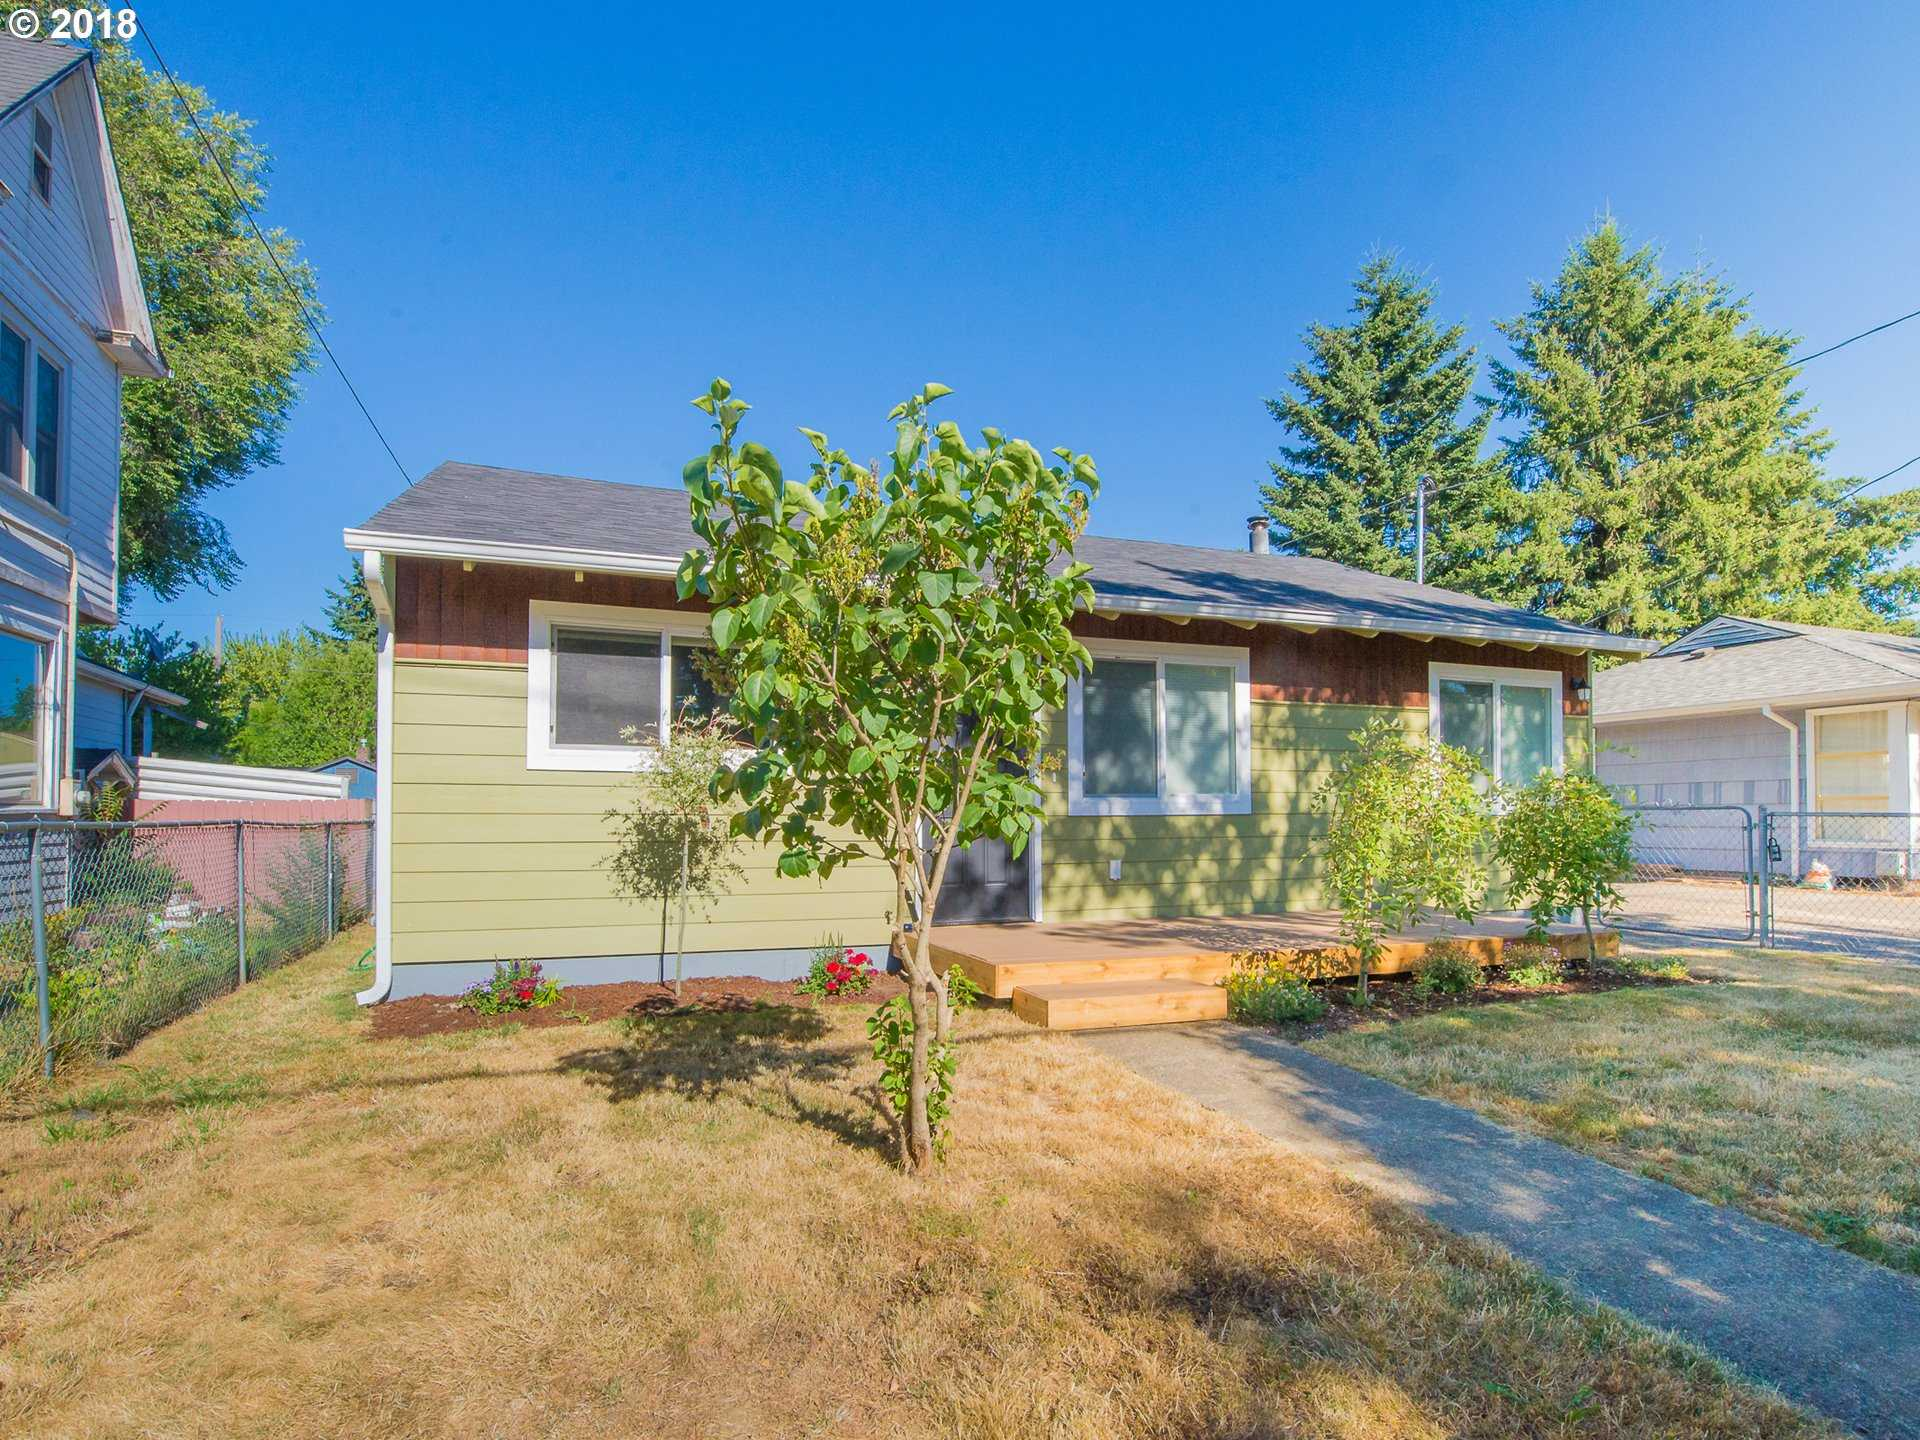 $389,900 - 3Br/2Ba -  for Sale in Portsmouth, Portland